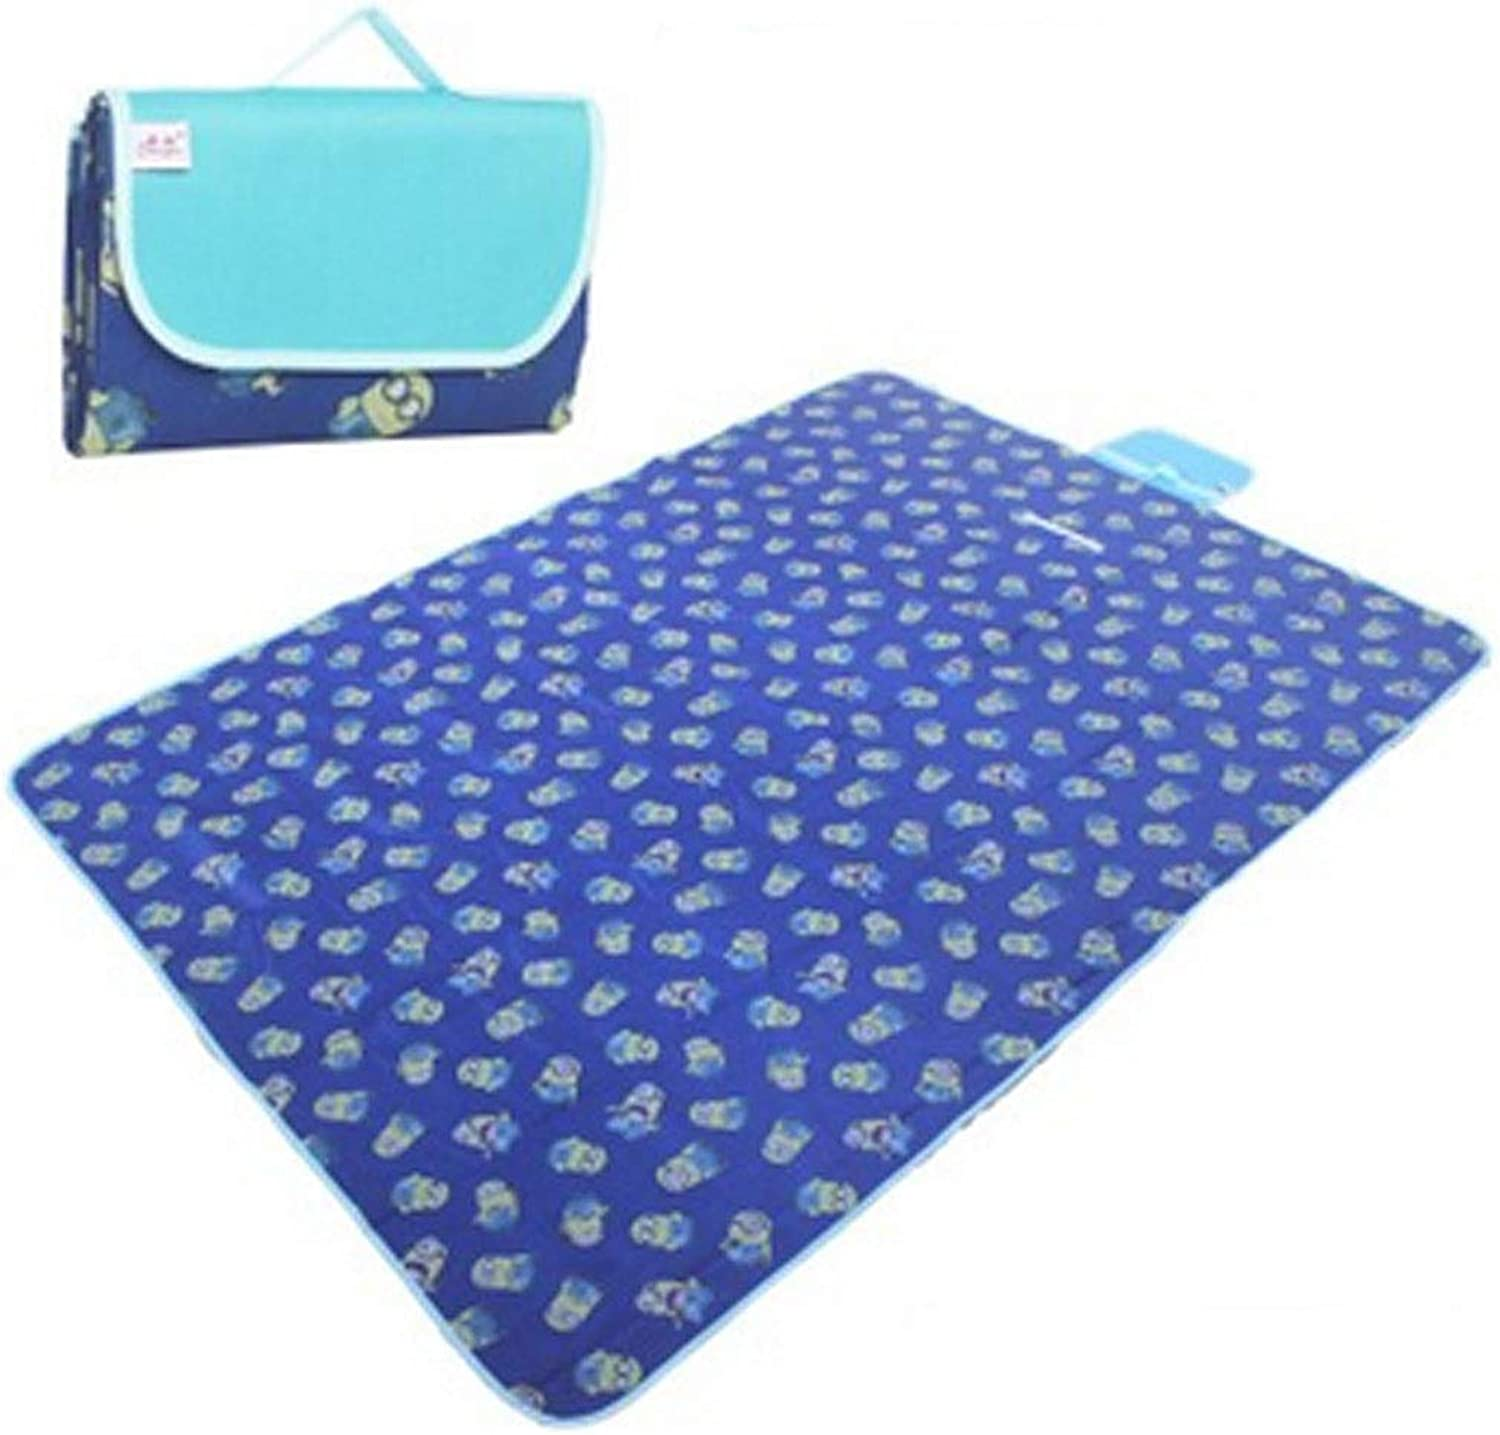 Camping Mat, Outdoor Waterproof Beach Mat, Picnic Mat, 250  150 cm, Suitable for Outdoor Travel, Multicolor Optional (color   A04, Size   250  150cm)